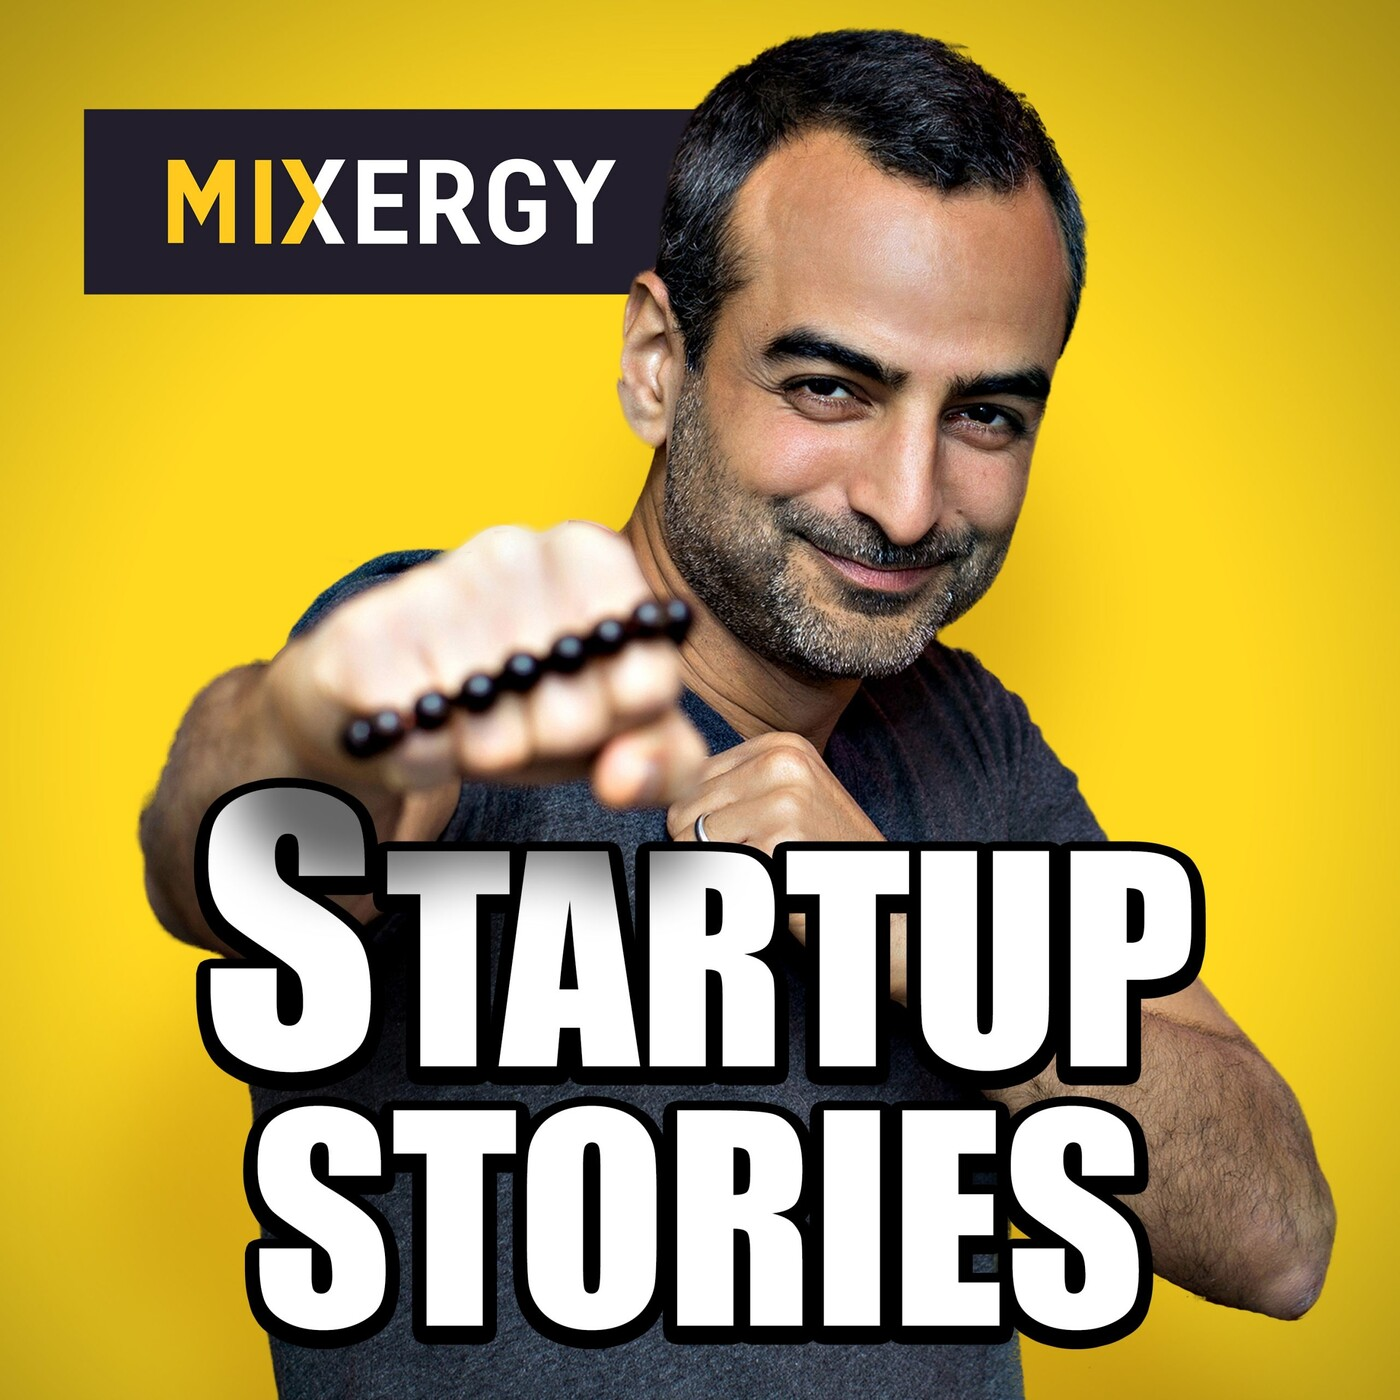 Mixergy - Startup Stories with 1000+ entrepeneurs